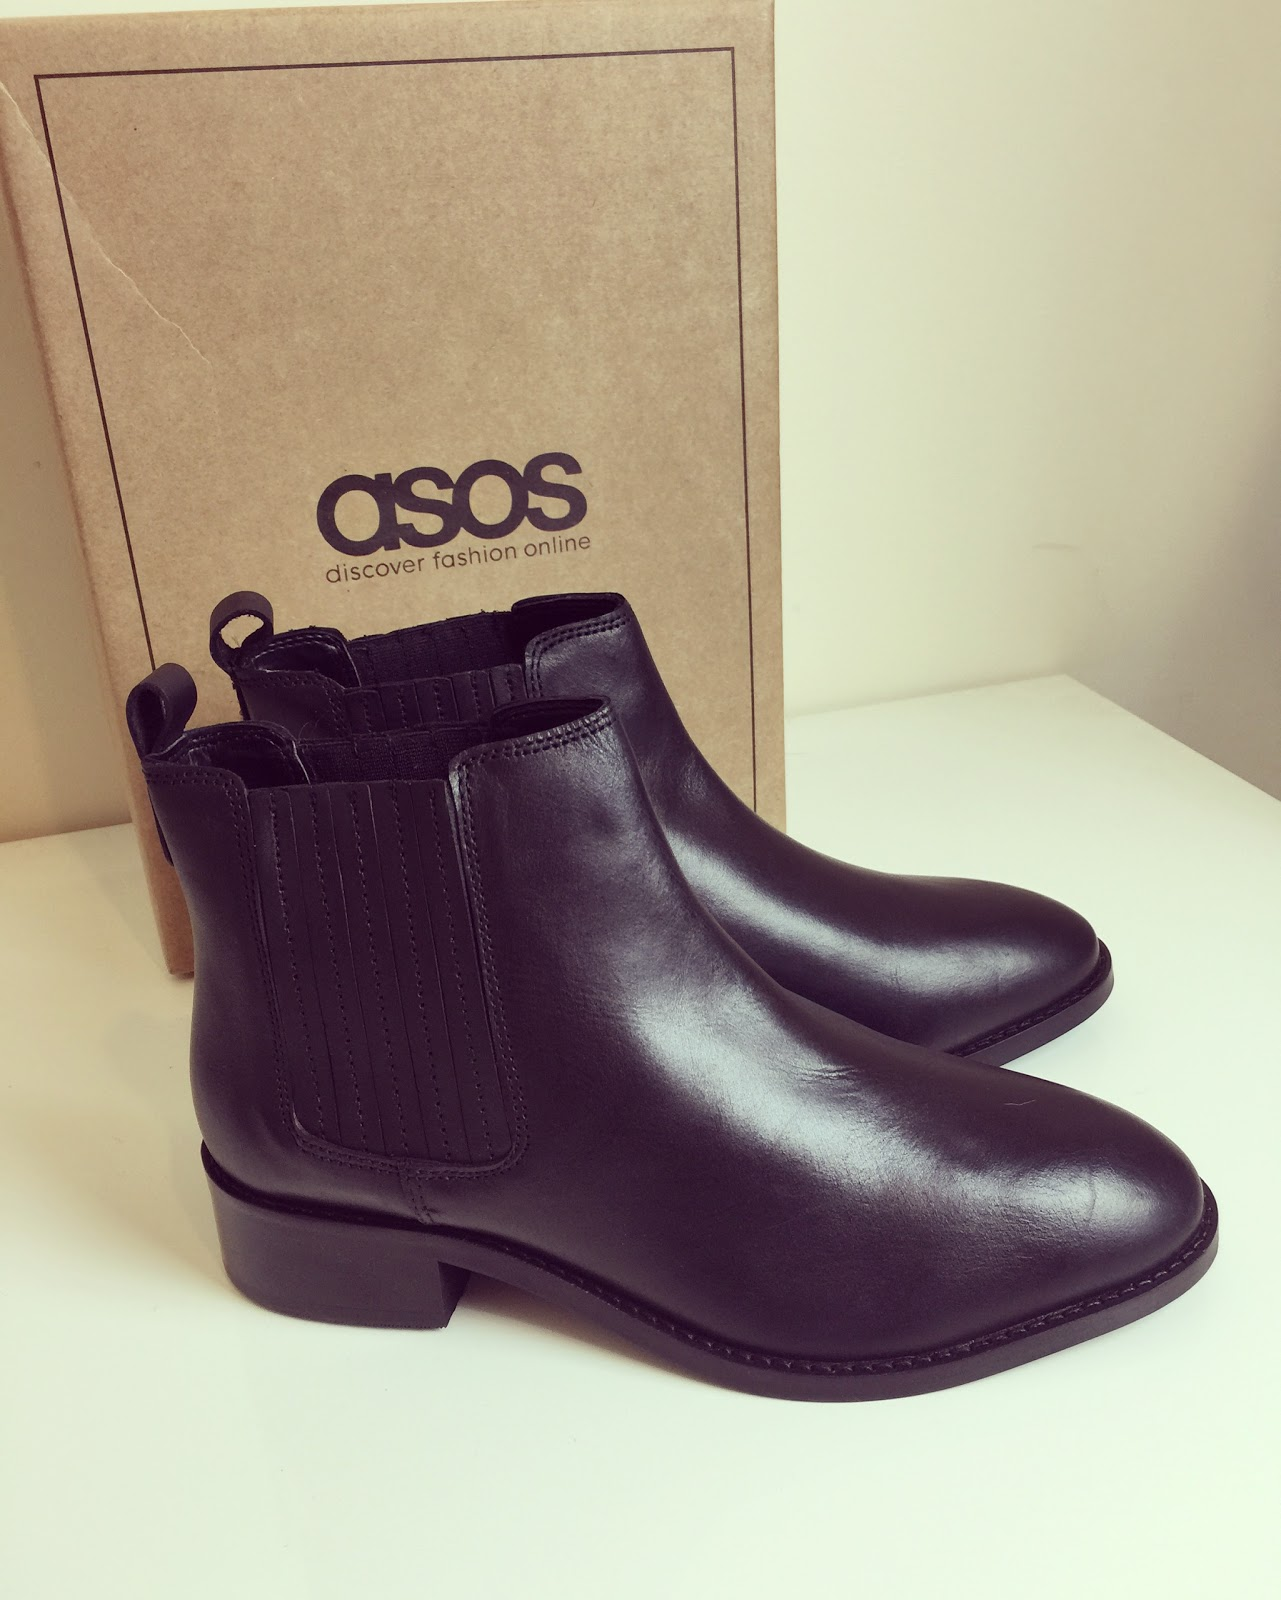 eb32e89277c ASOS About Time Ankle Boots in Wide Fit are a stunning black leather ankle  boot. I have wide feet and although I can wear some leather boots I find  some of ...